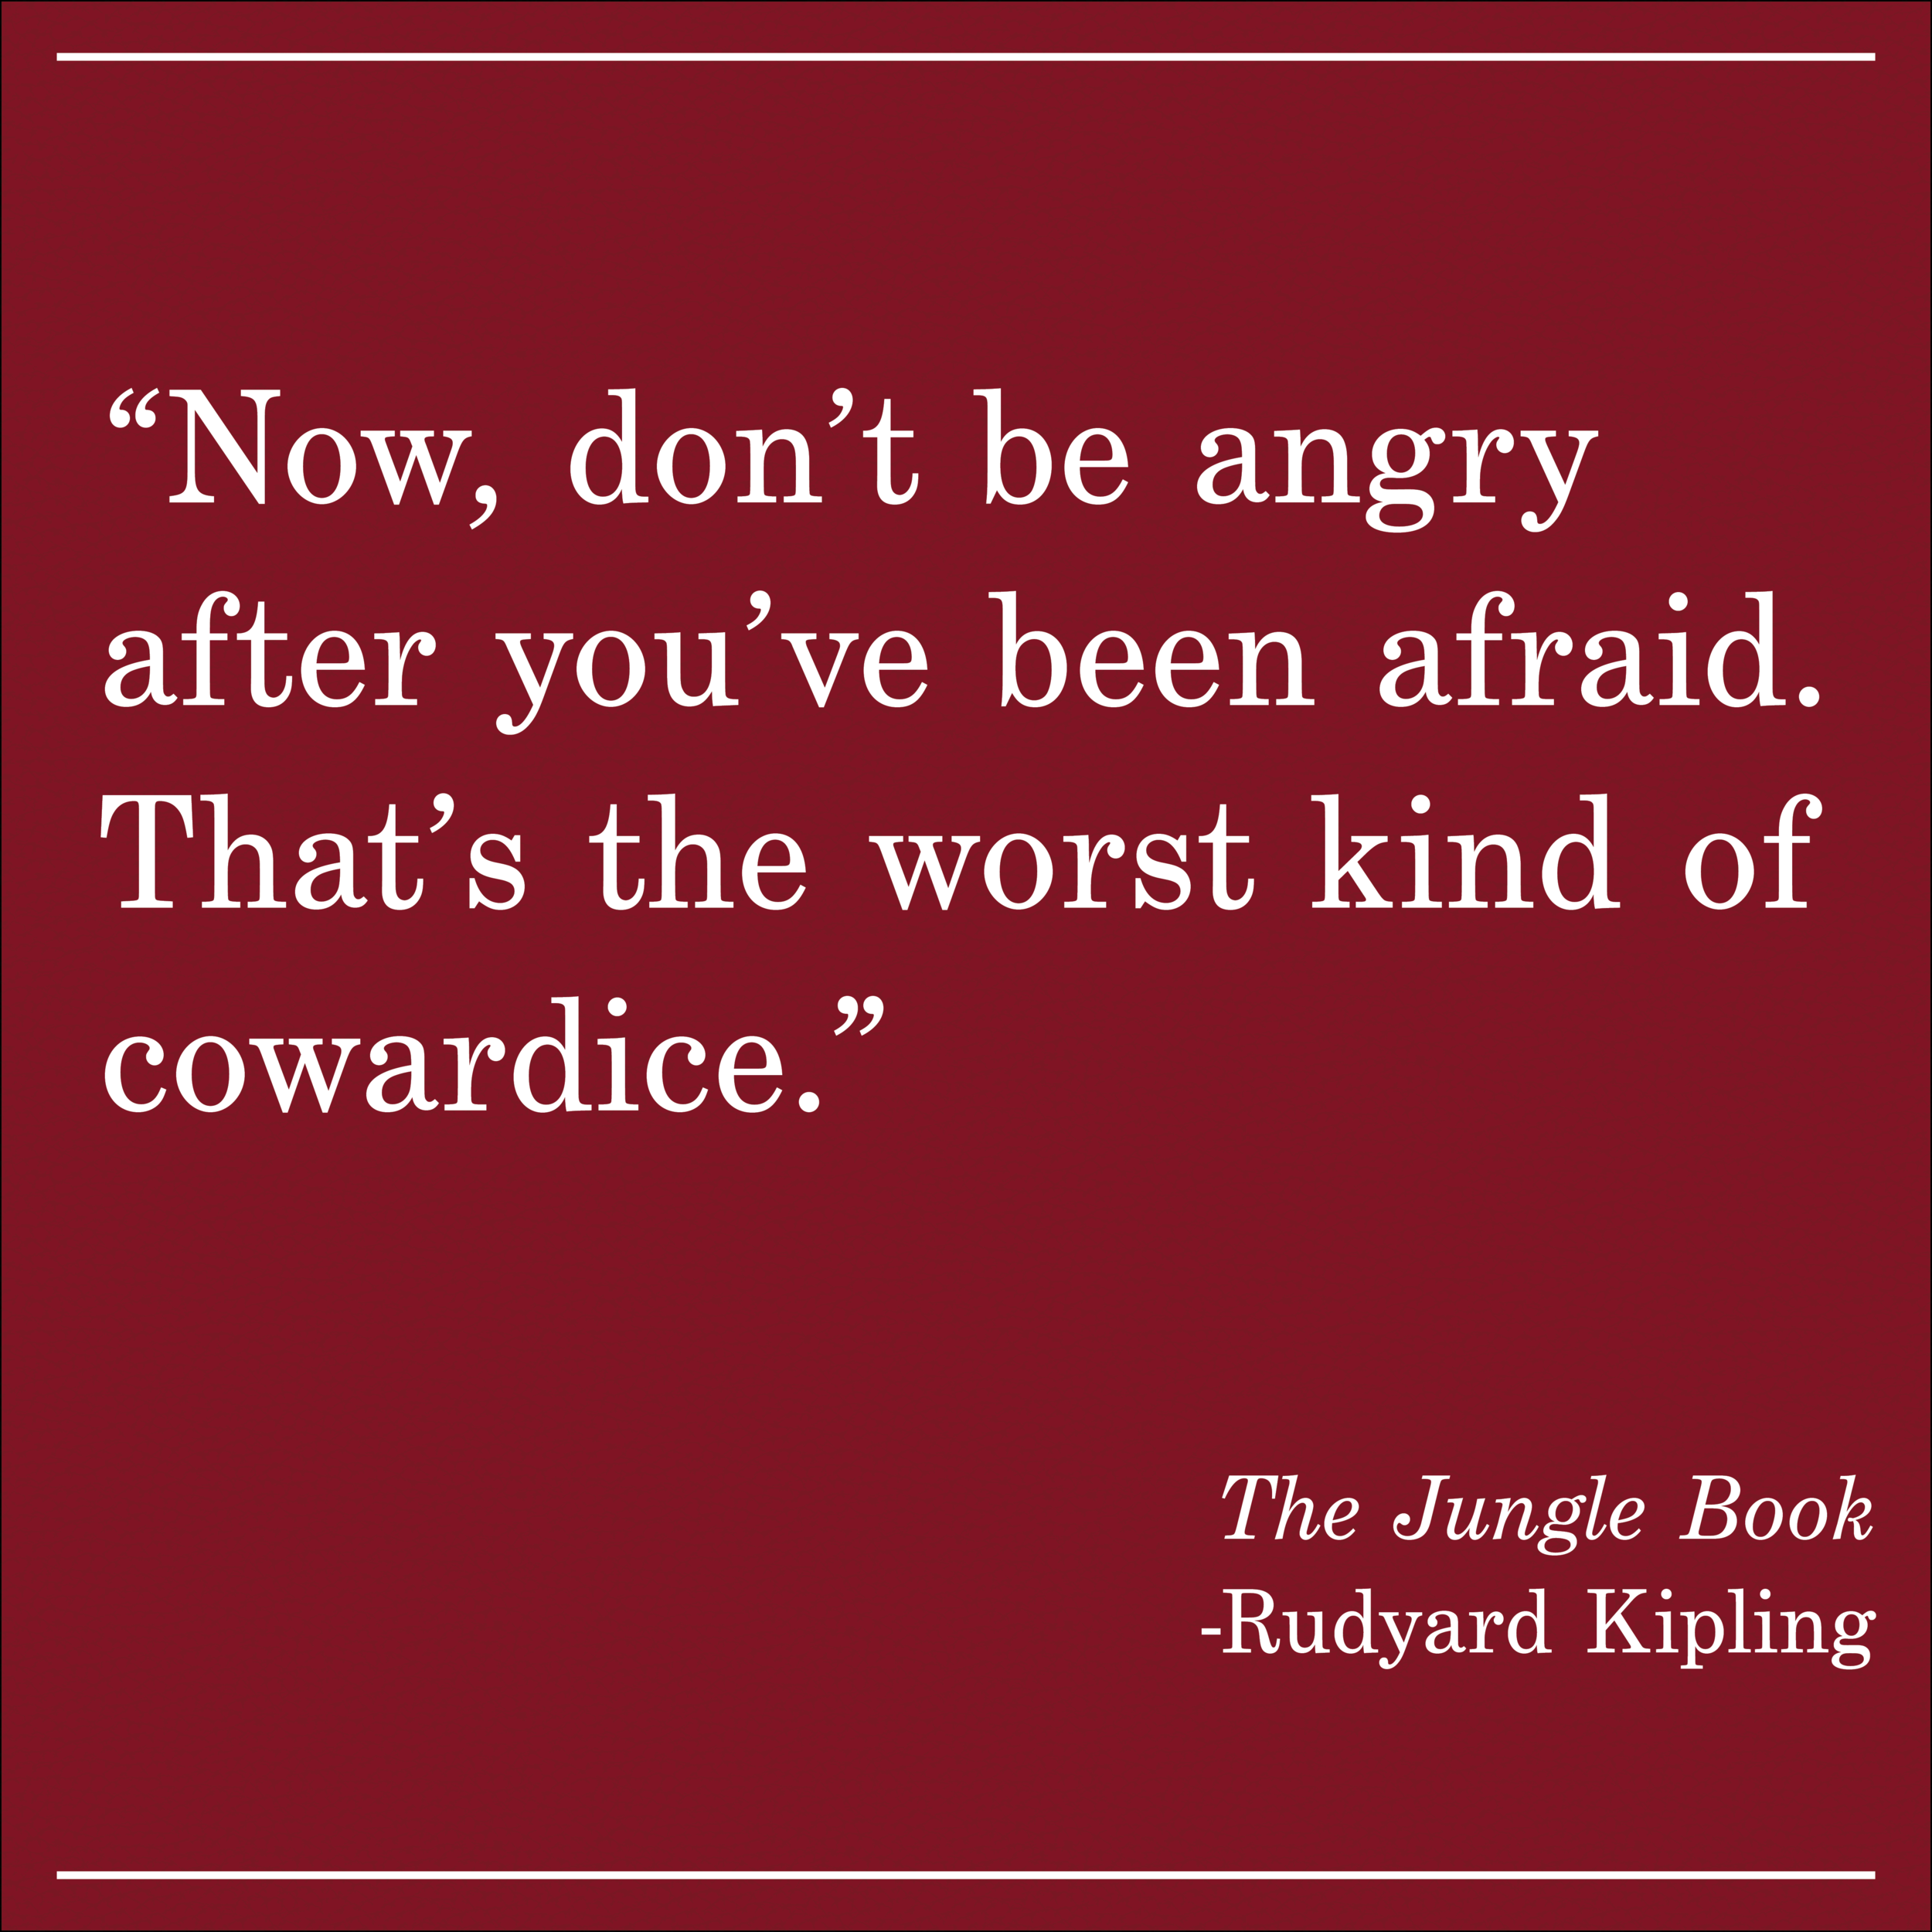 Daily Quote The Jungle Book by Rudyard Kipling